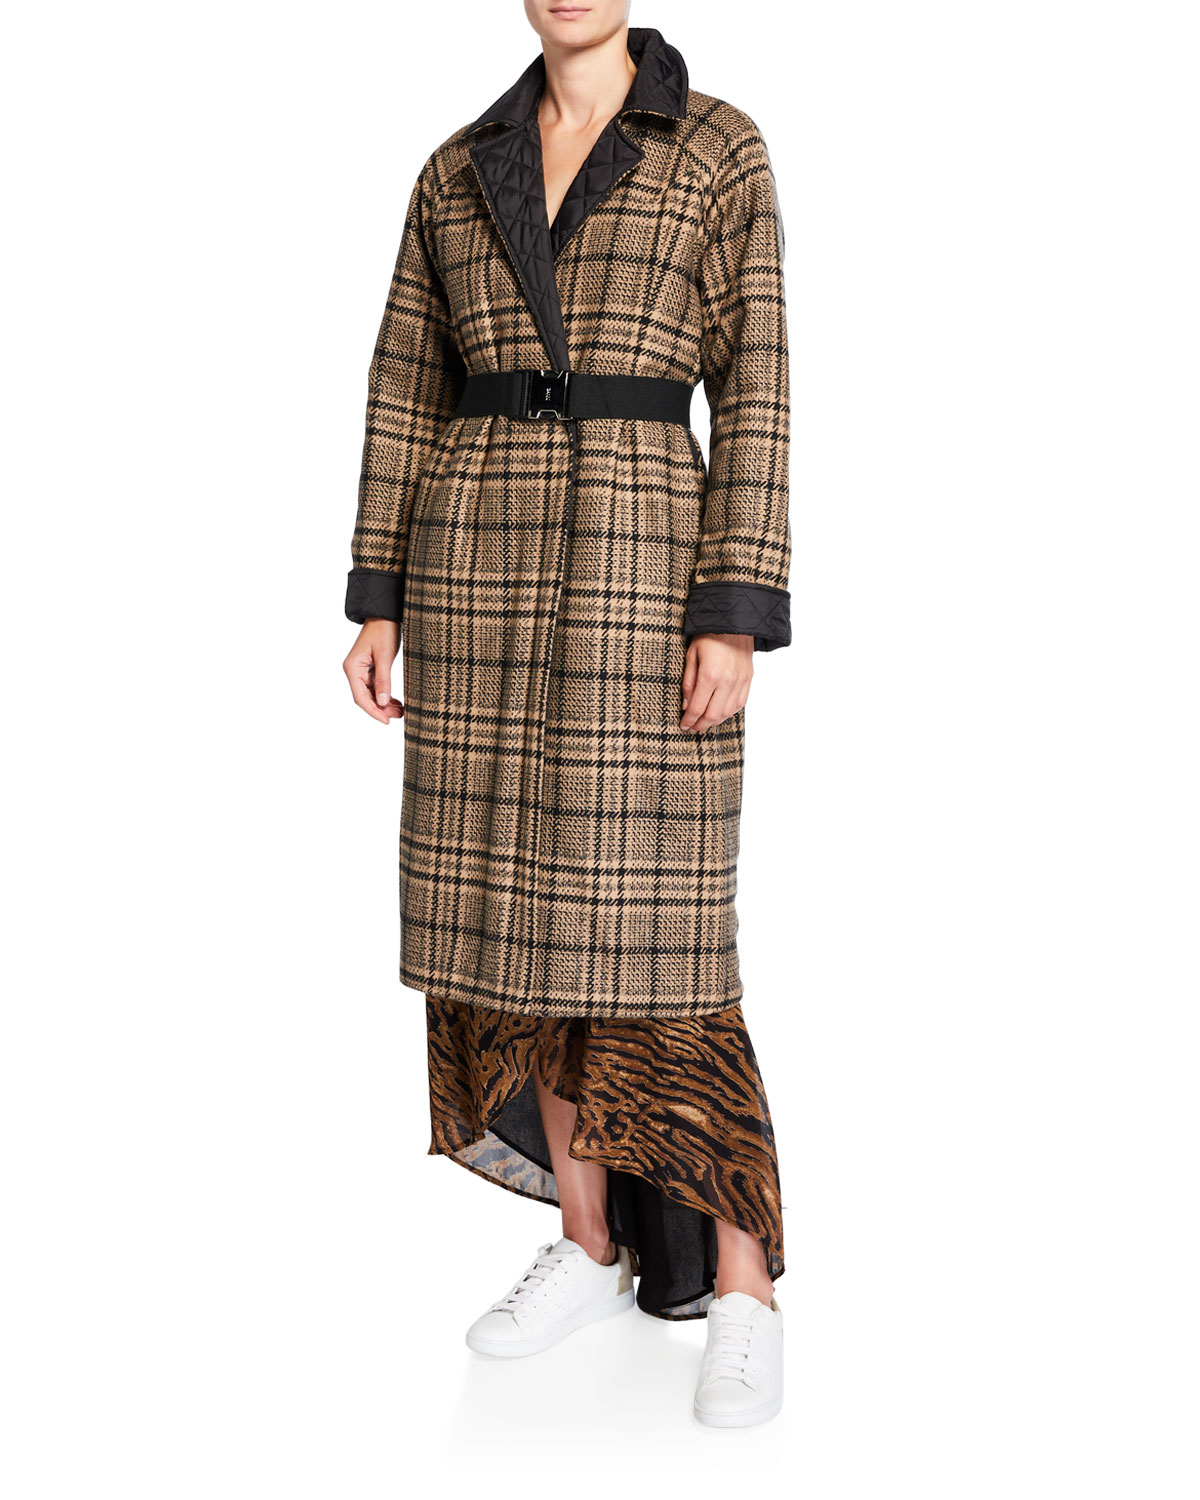 Ganni Coats REVERSIBLE QUILTED CHECK TECH WOOL COAT